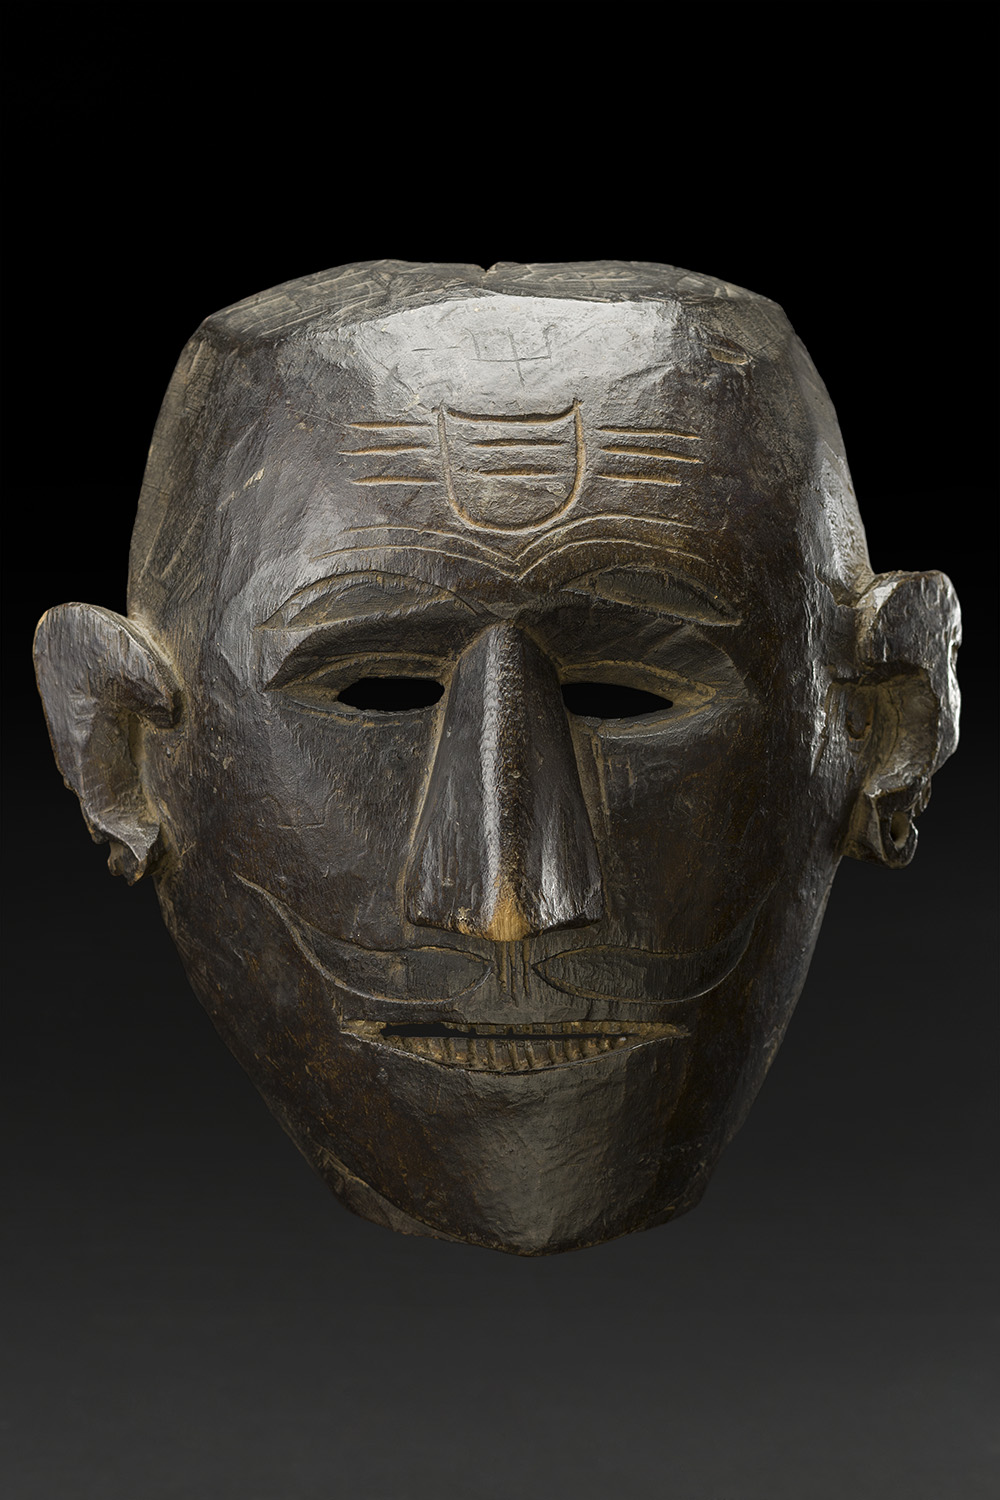 Masks    Nepal  , Early 20th C. Wood 11.5 x 10.4 x 5.5 inches 29.2 x 26.4 x 14 cm M 220s